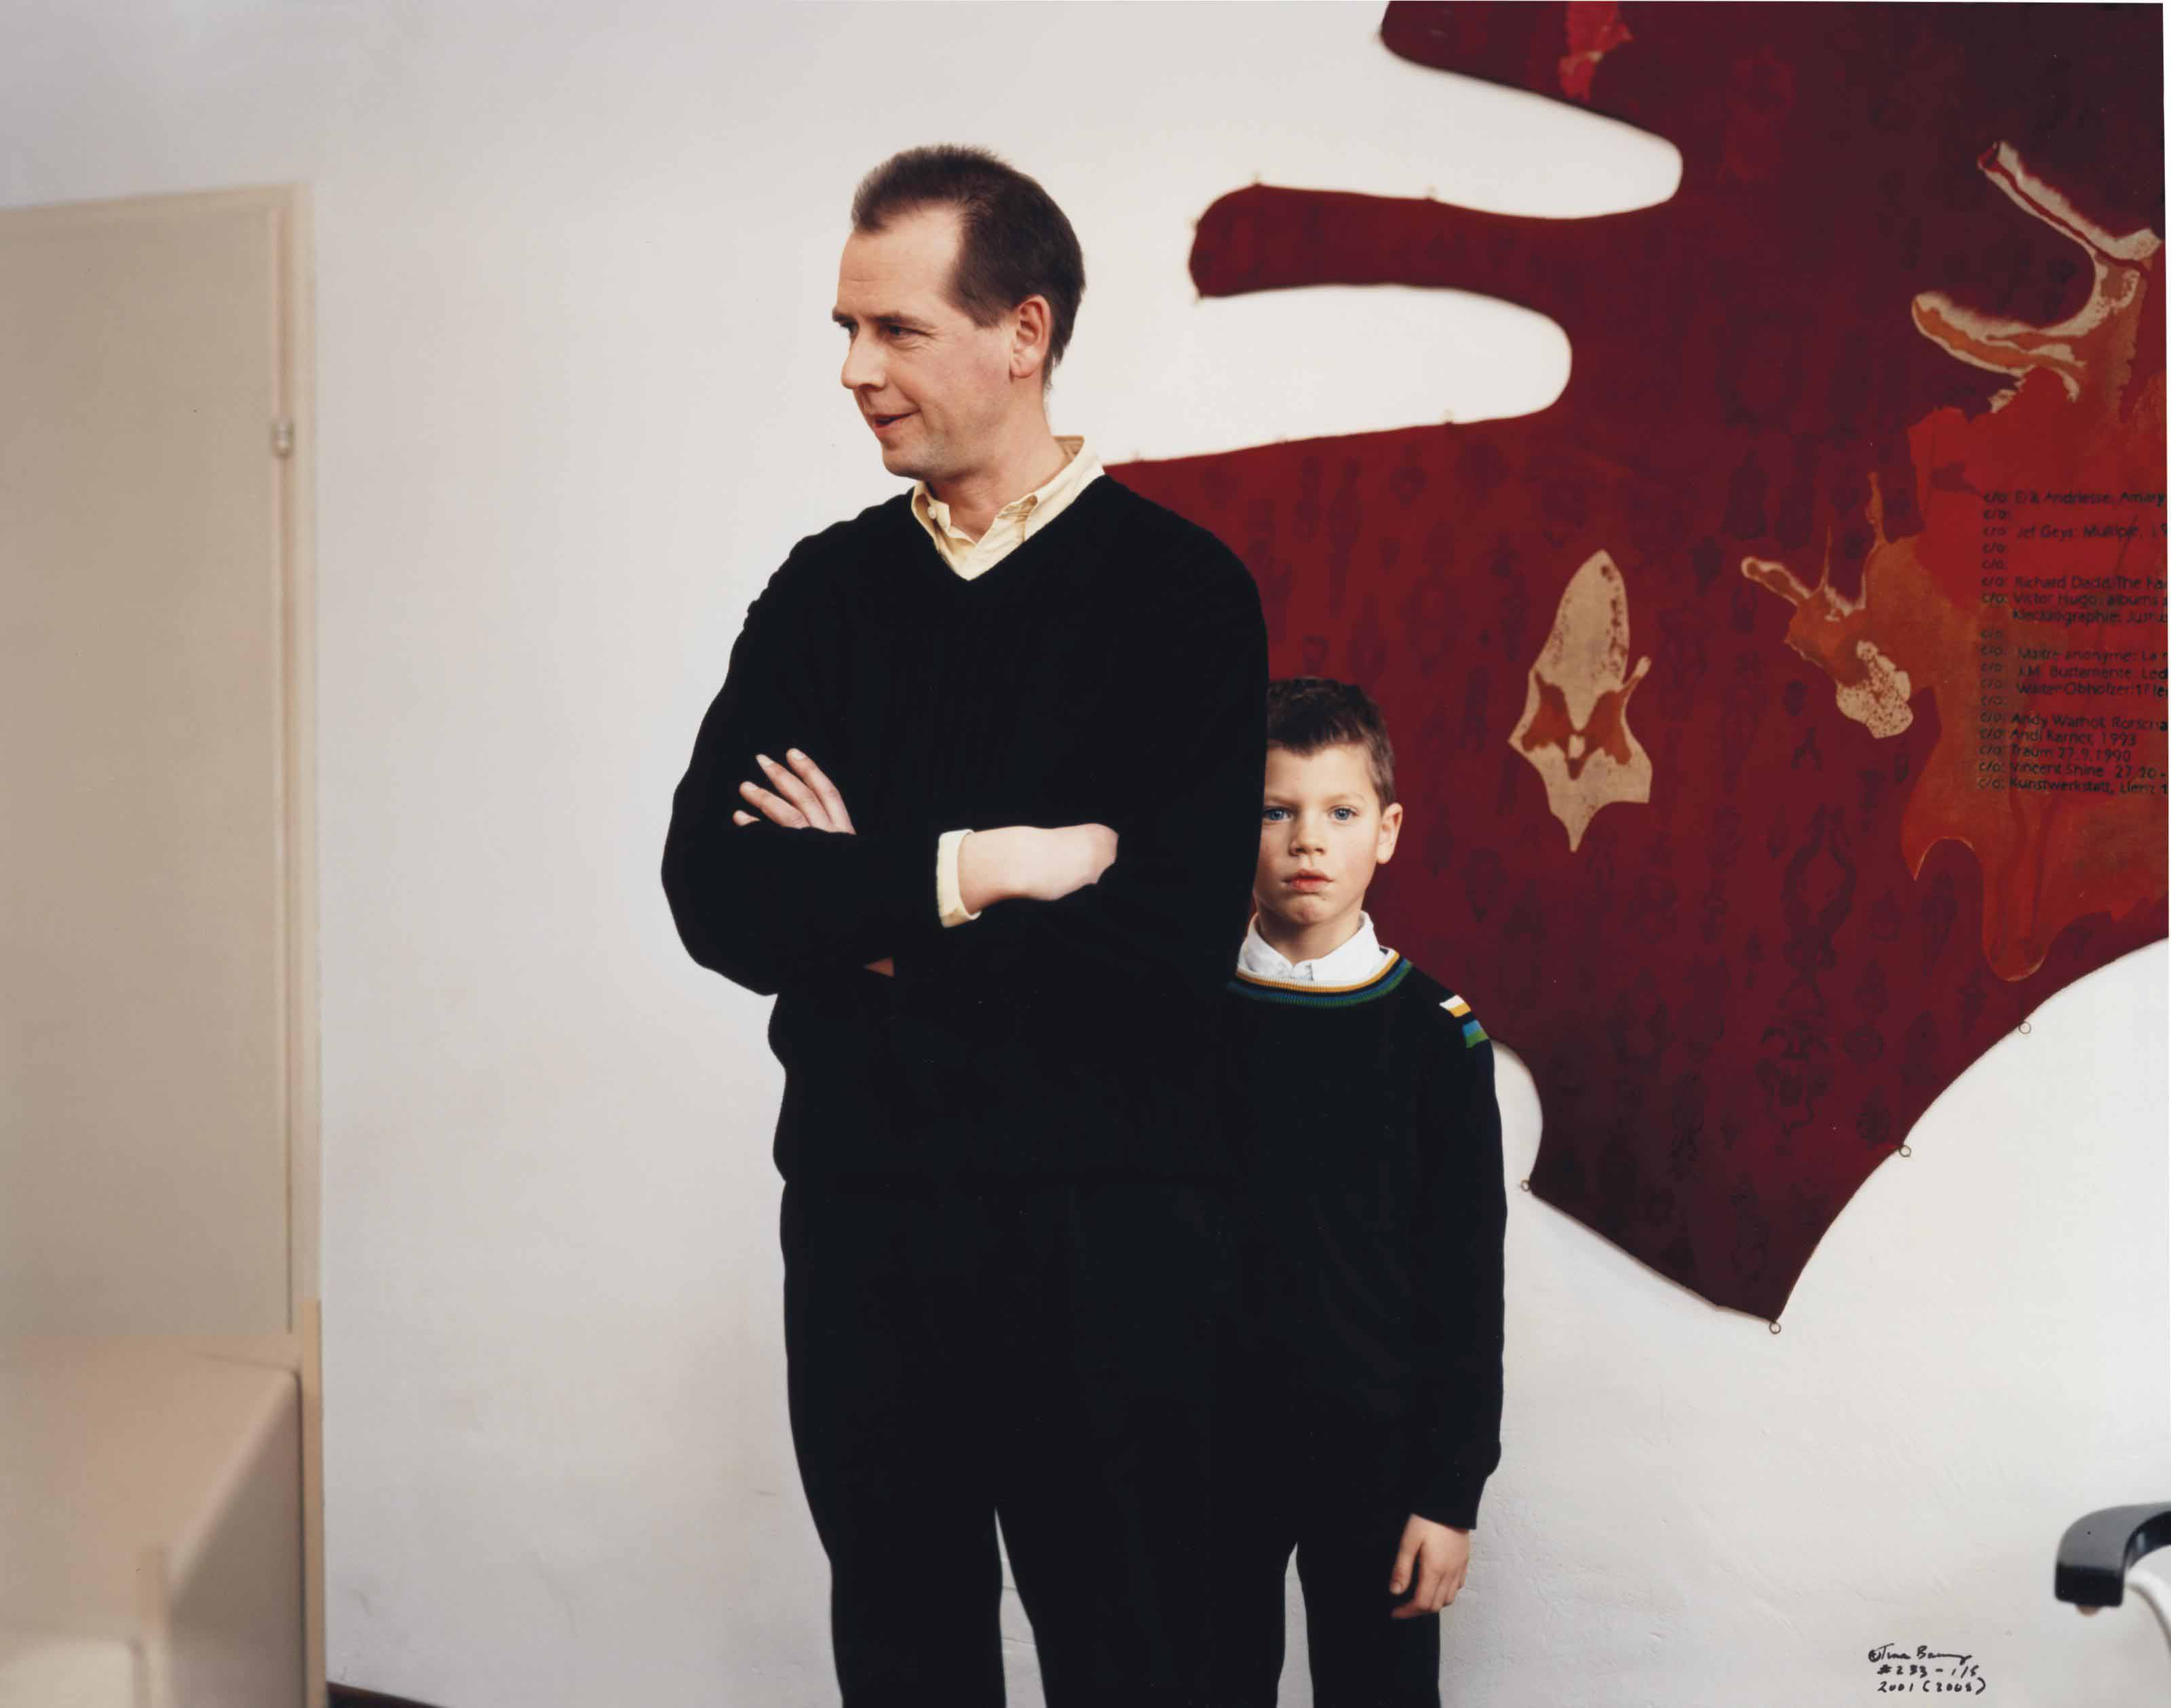 Art Dealer and Son, 2001